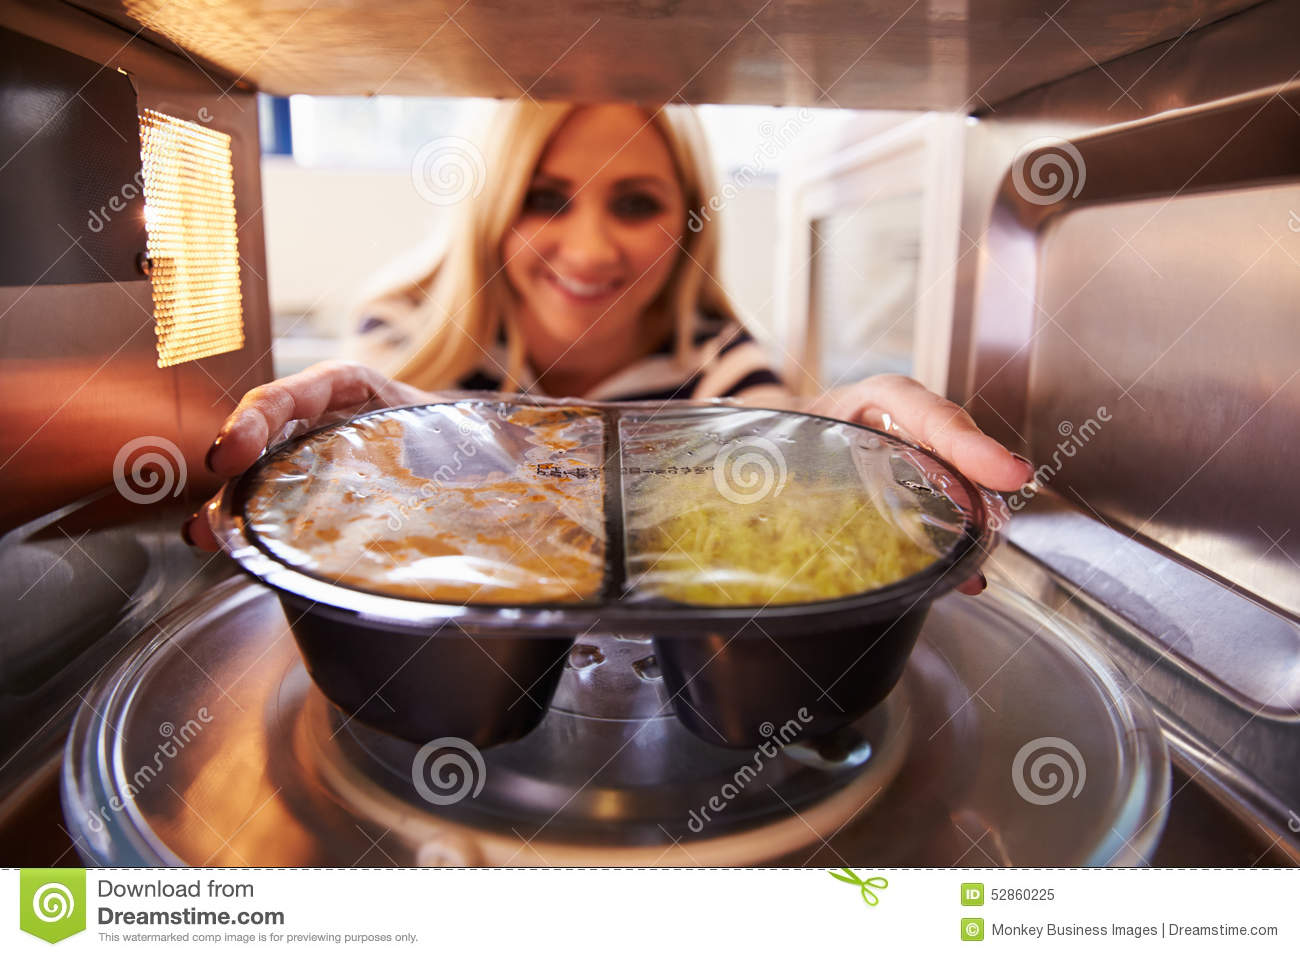 Woman Putting TV Dinner Into Microwave Oven To Cook